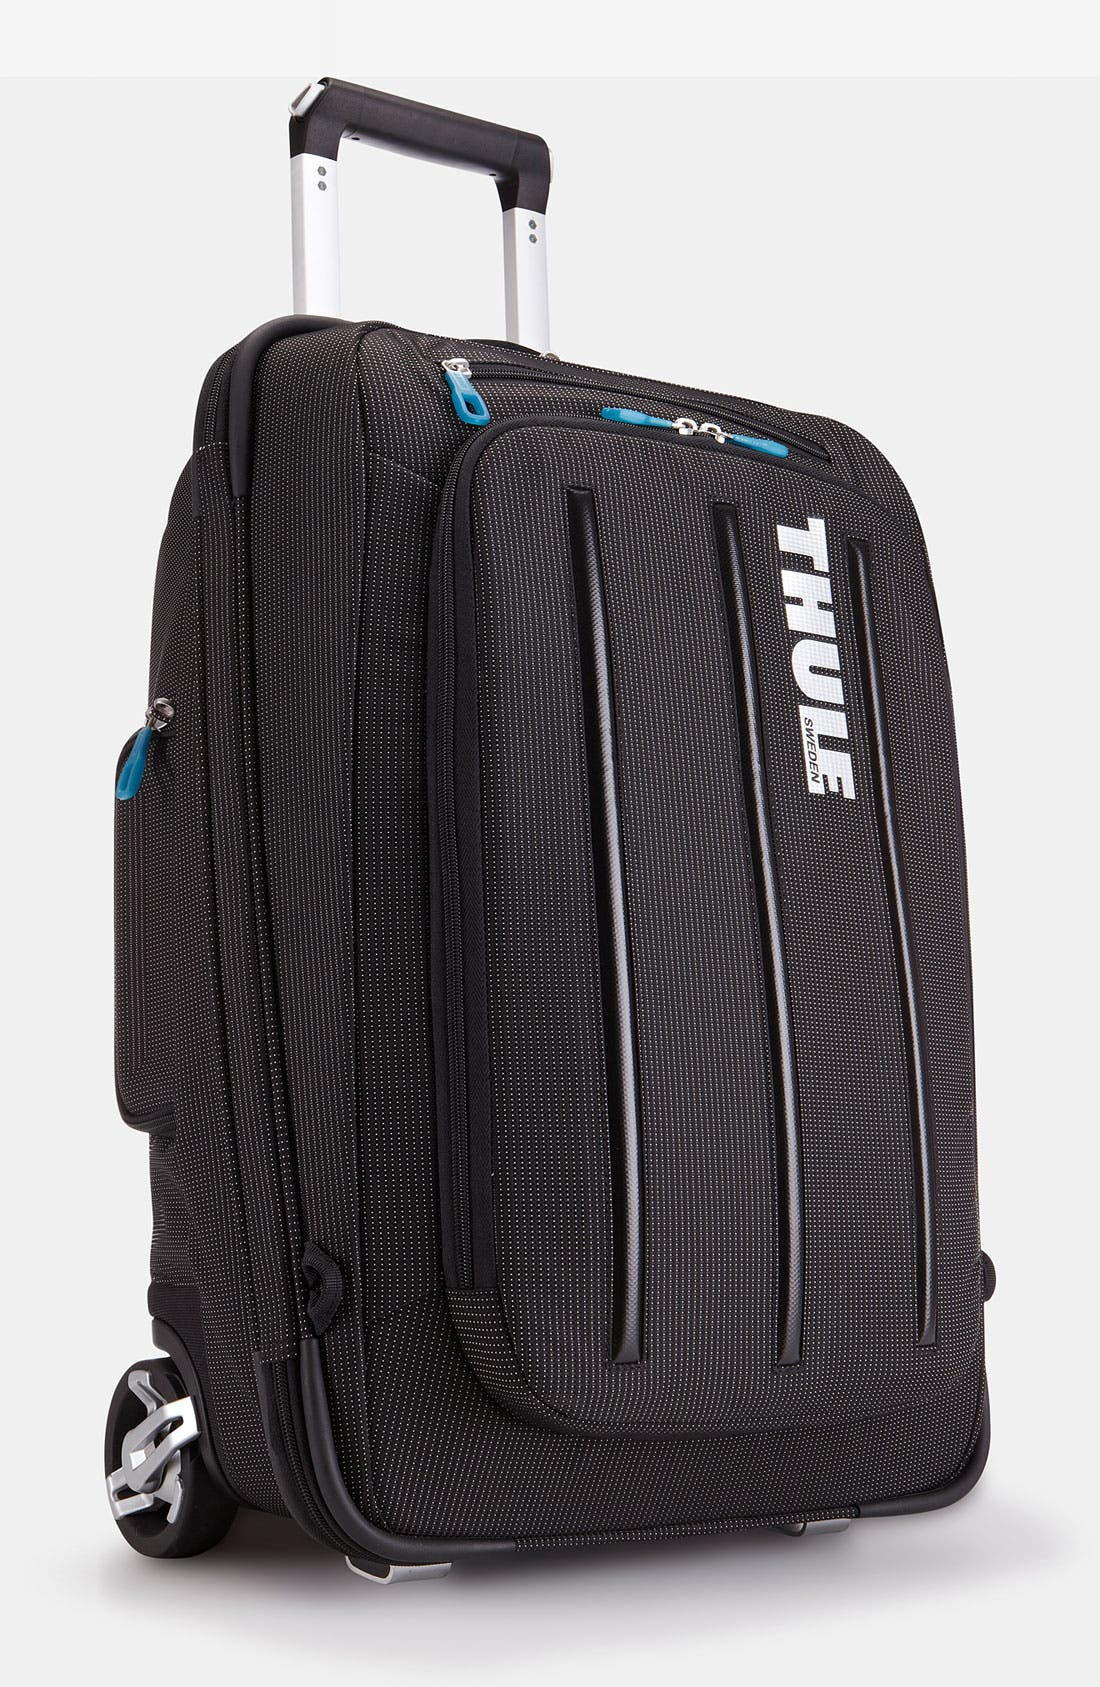 Main Image - Thule 'Crossover' Wheeled Carry-On (22 Inch)